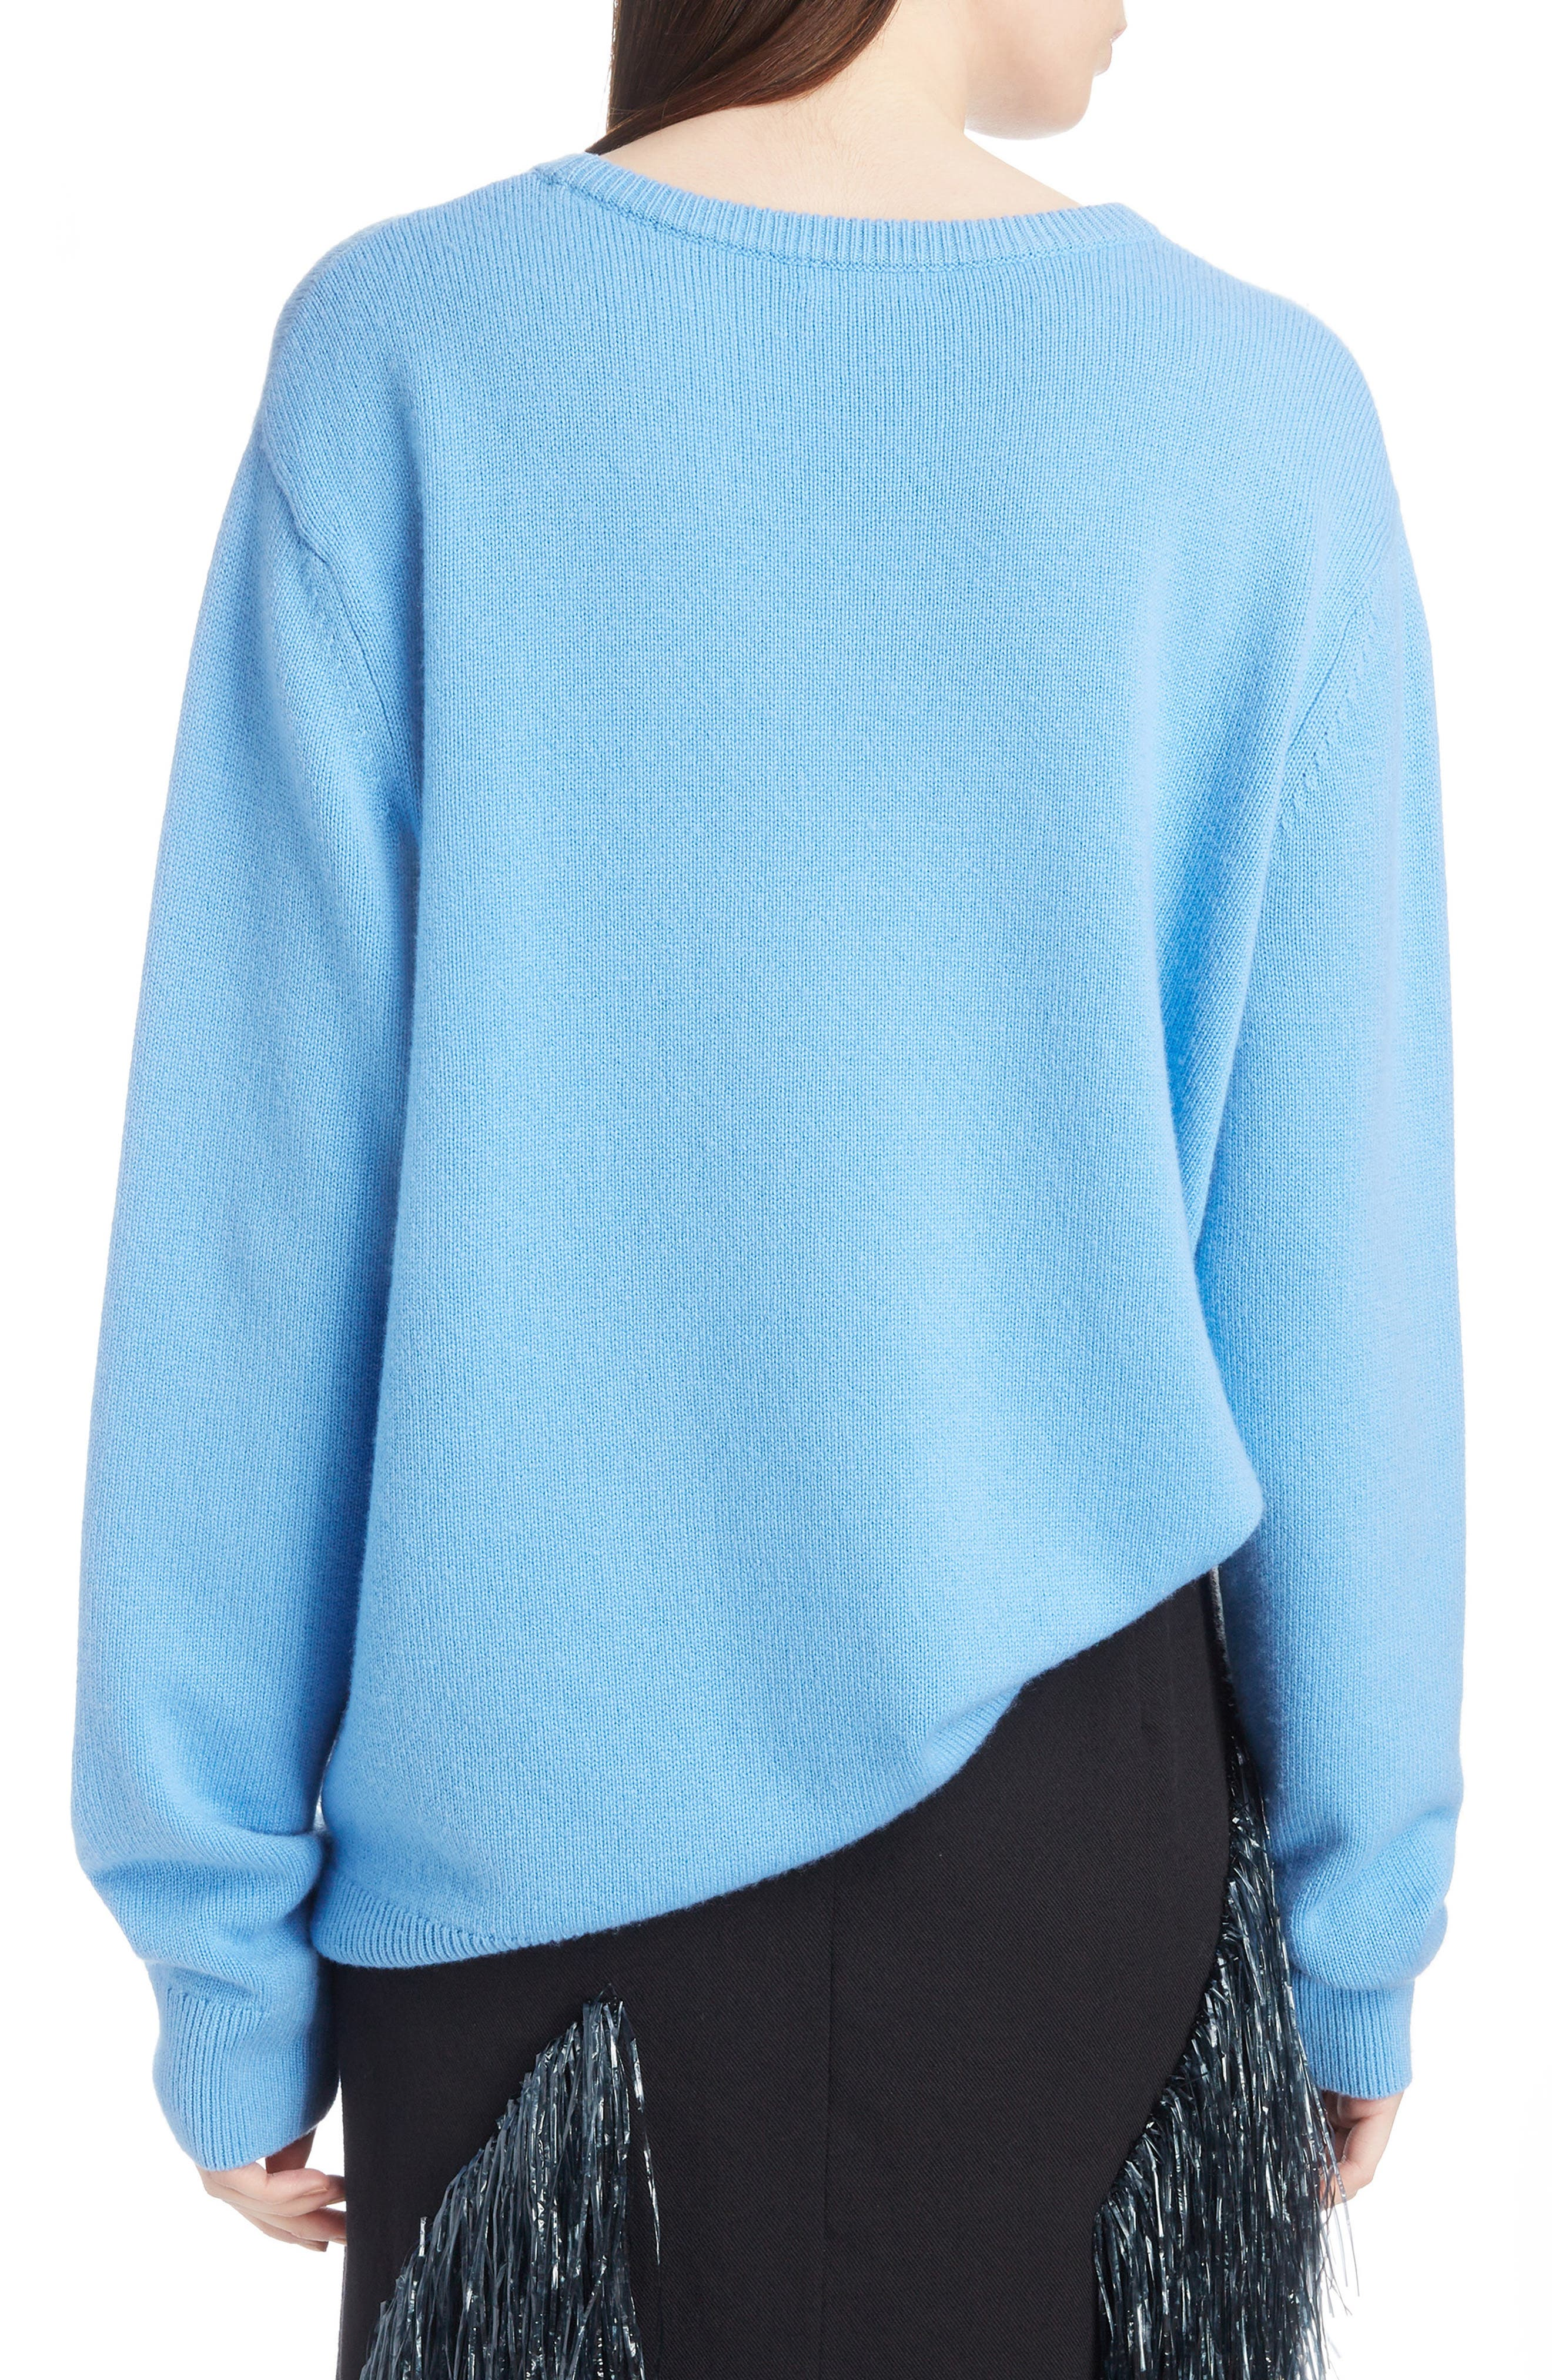 Relaxed Cashmere Sweater,                             Alternate thumbnail 2, color,                             400